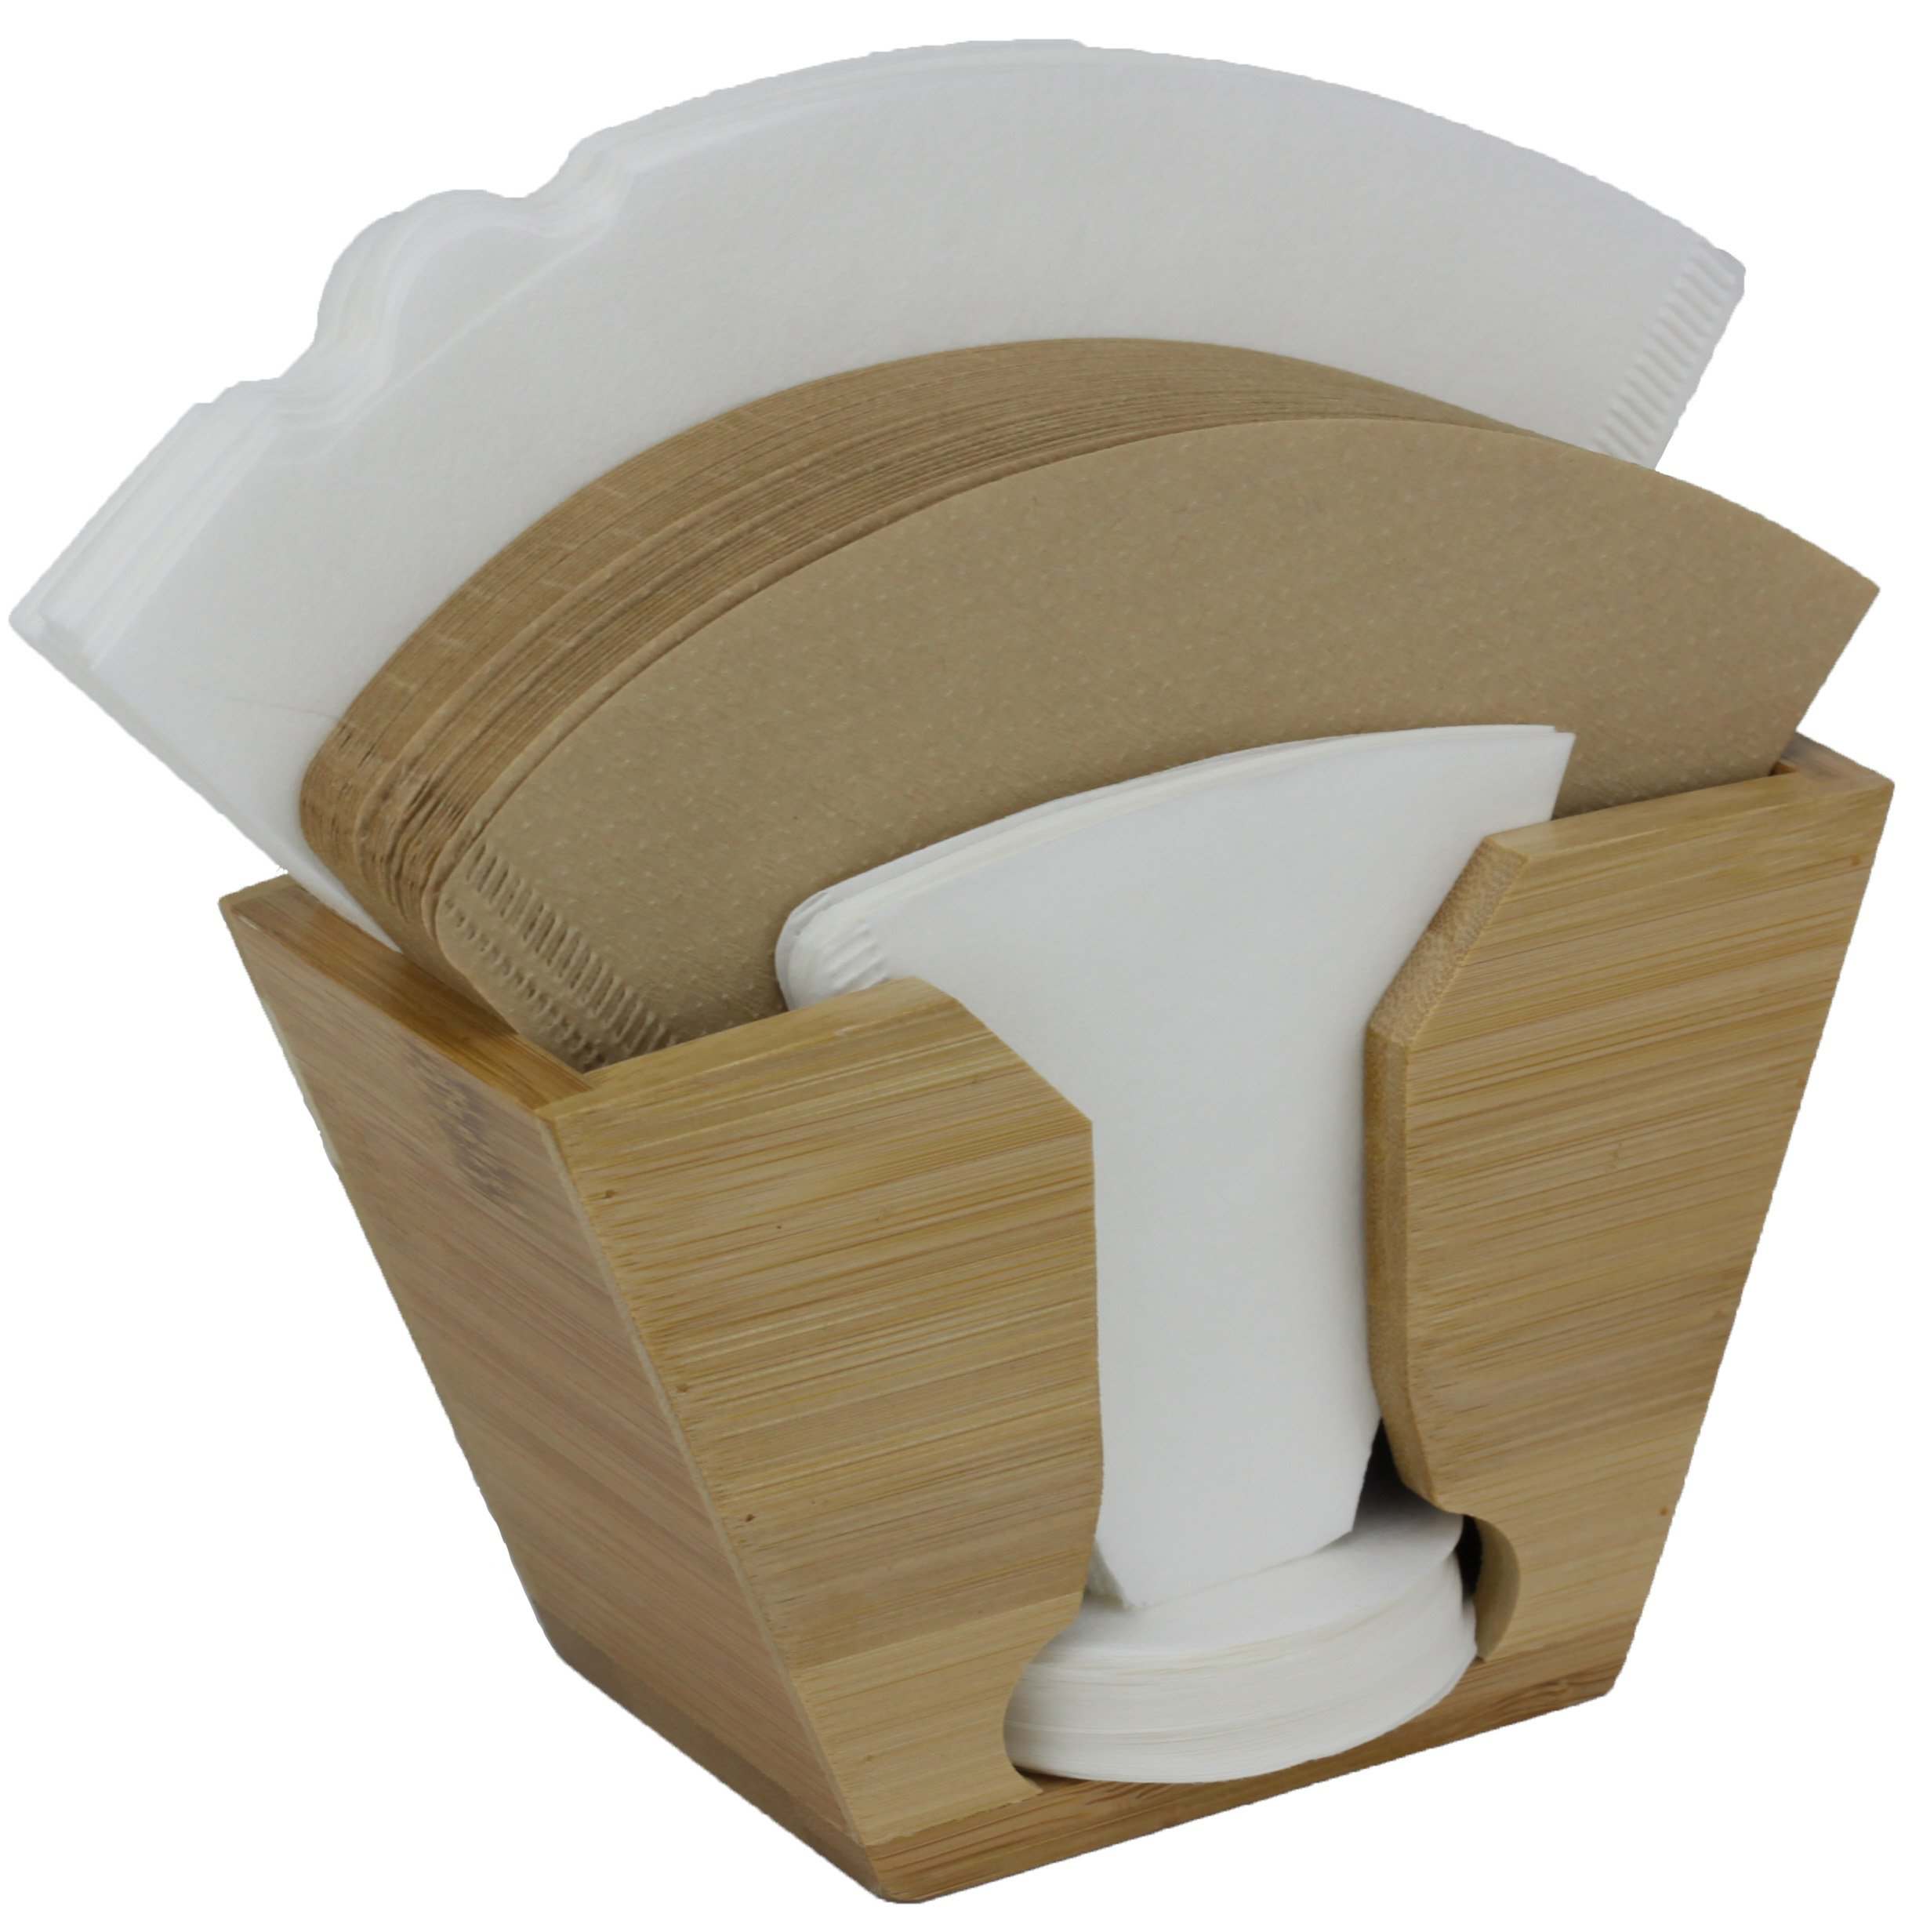 Coffee Filter Holder made from sustainable natural Bamboo. Imagine never looking the ugly ripped open paper filter box again that gets damp and wet on our counter. Fits all sizes: #4, 6 Millita, Hari by BaarBird